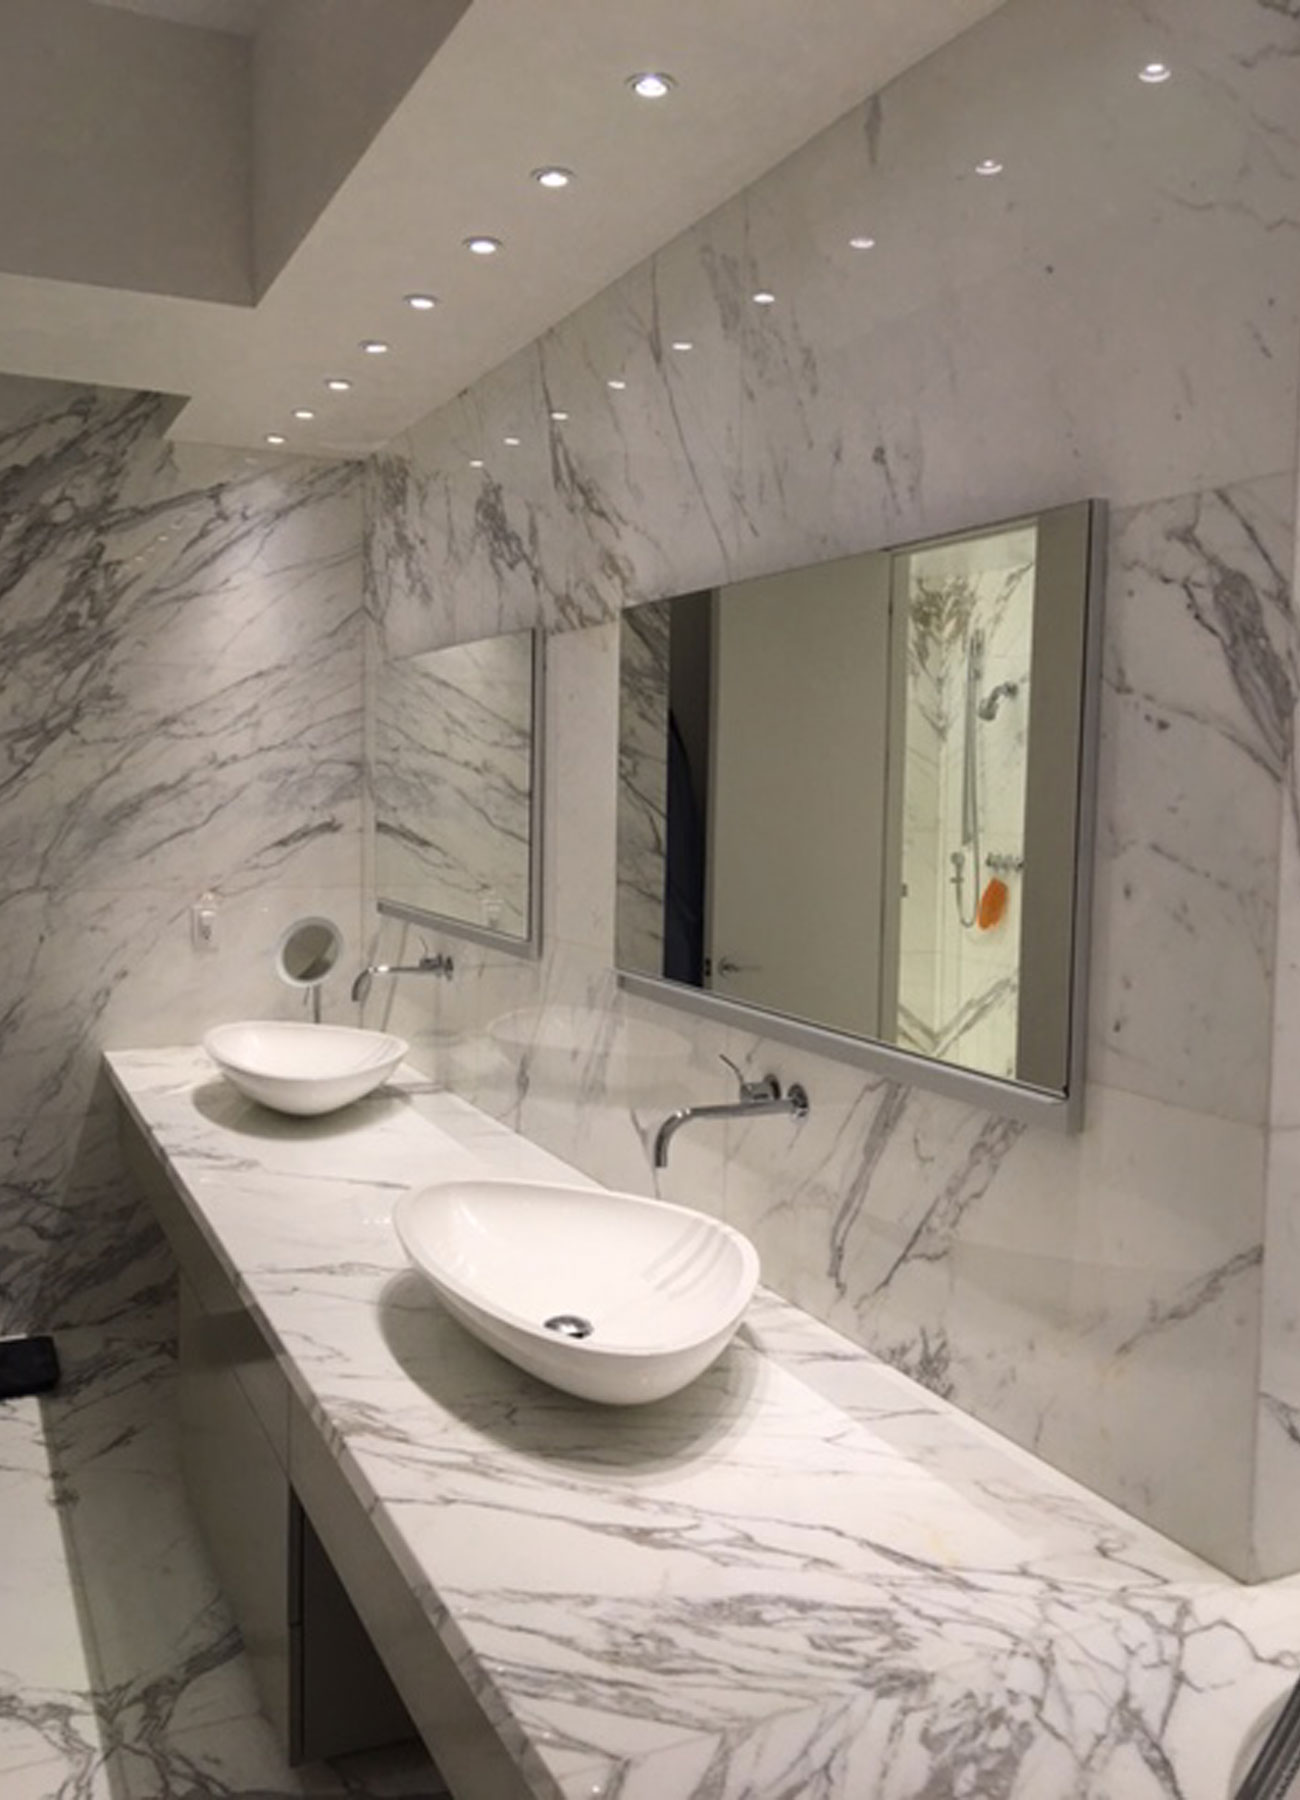 All-marble bathroom with two sinks and mirrors